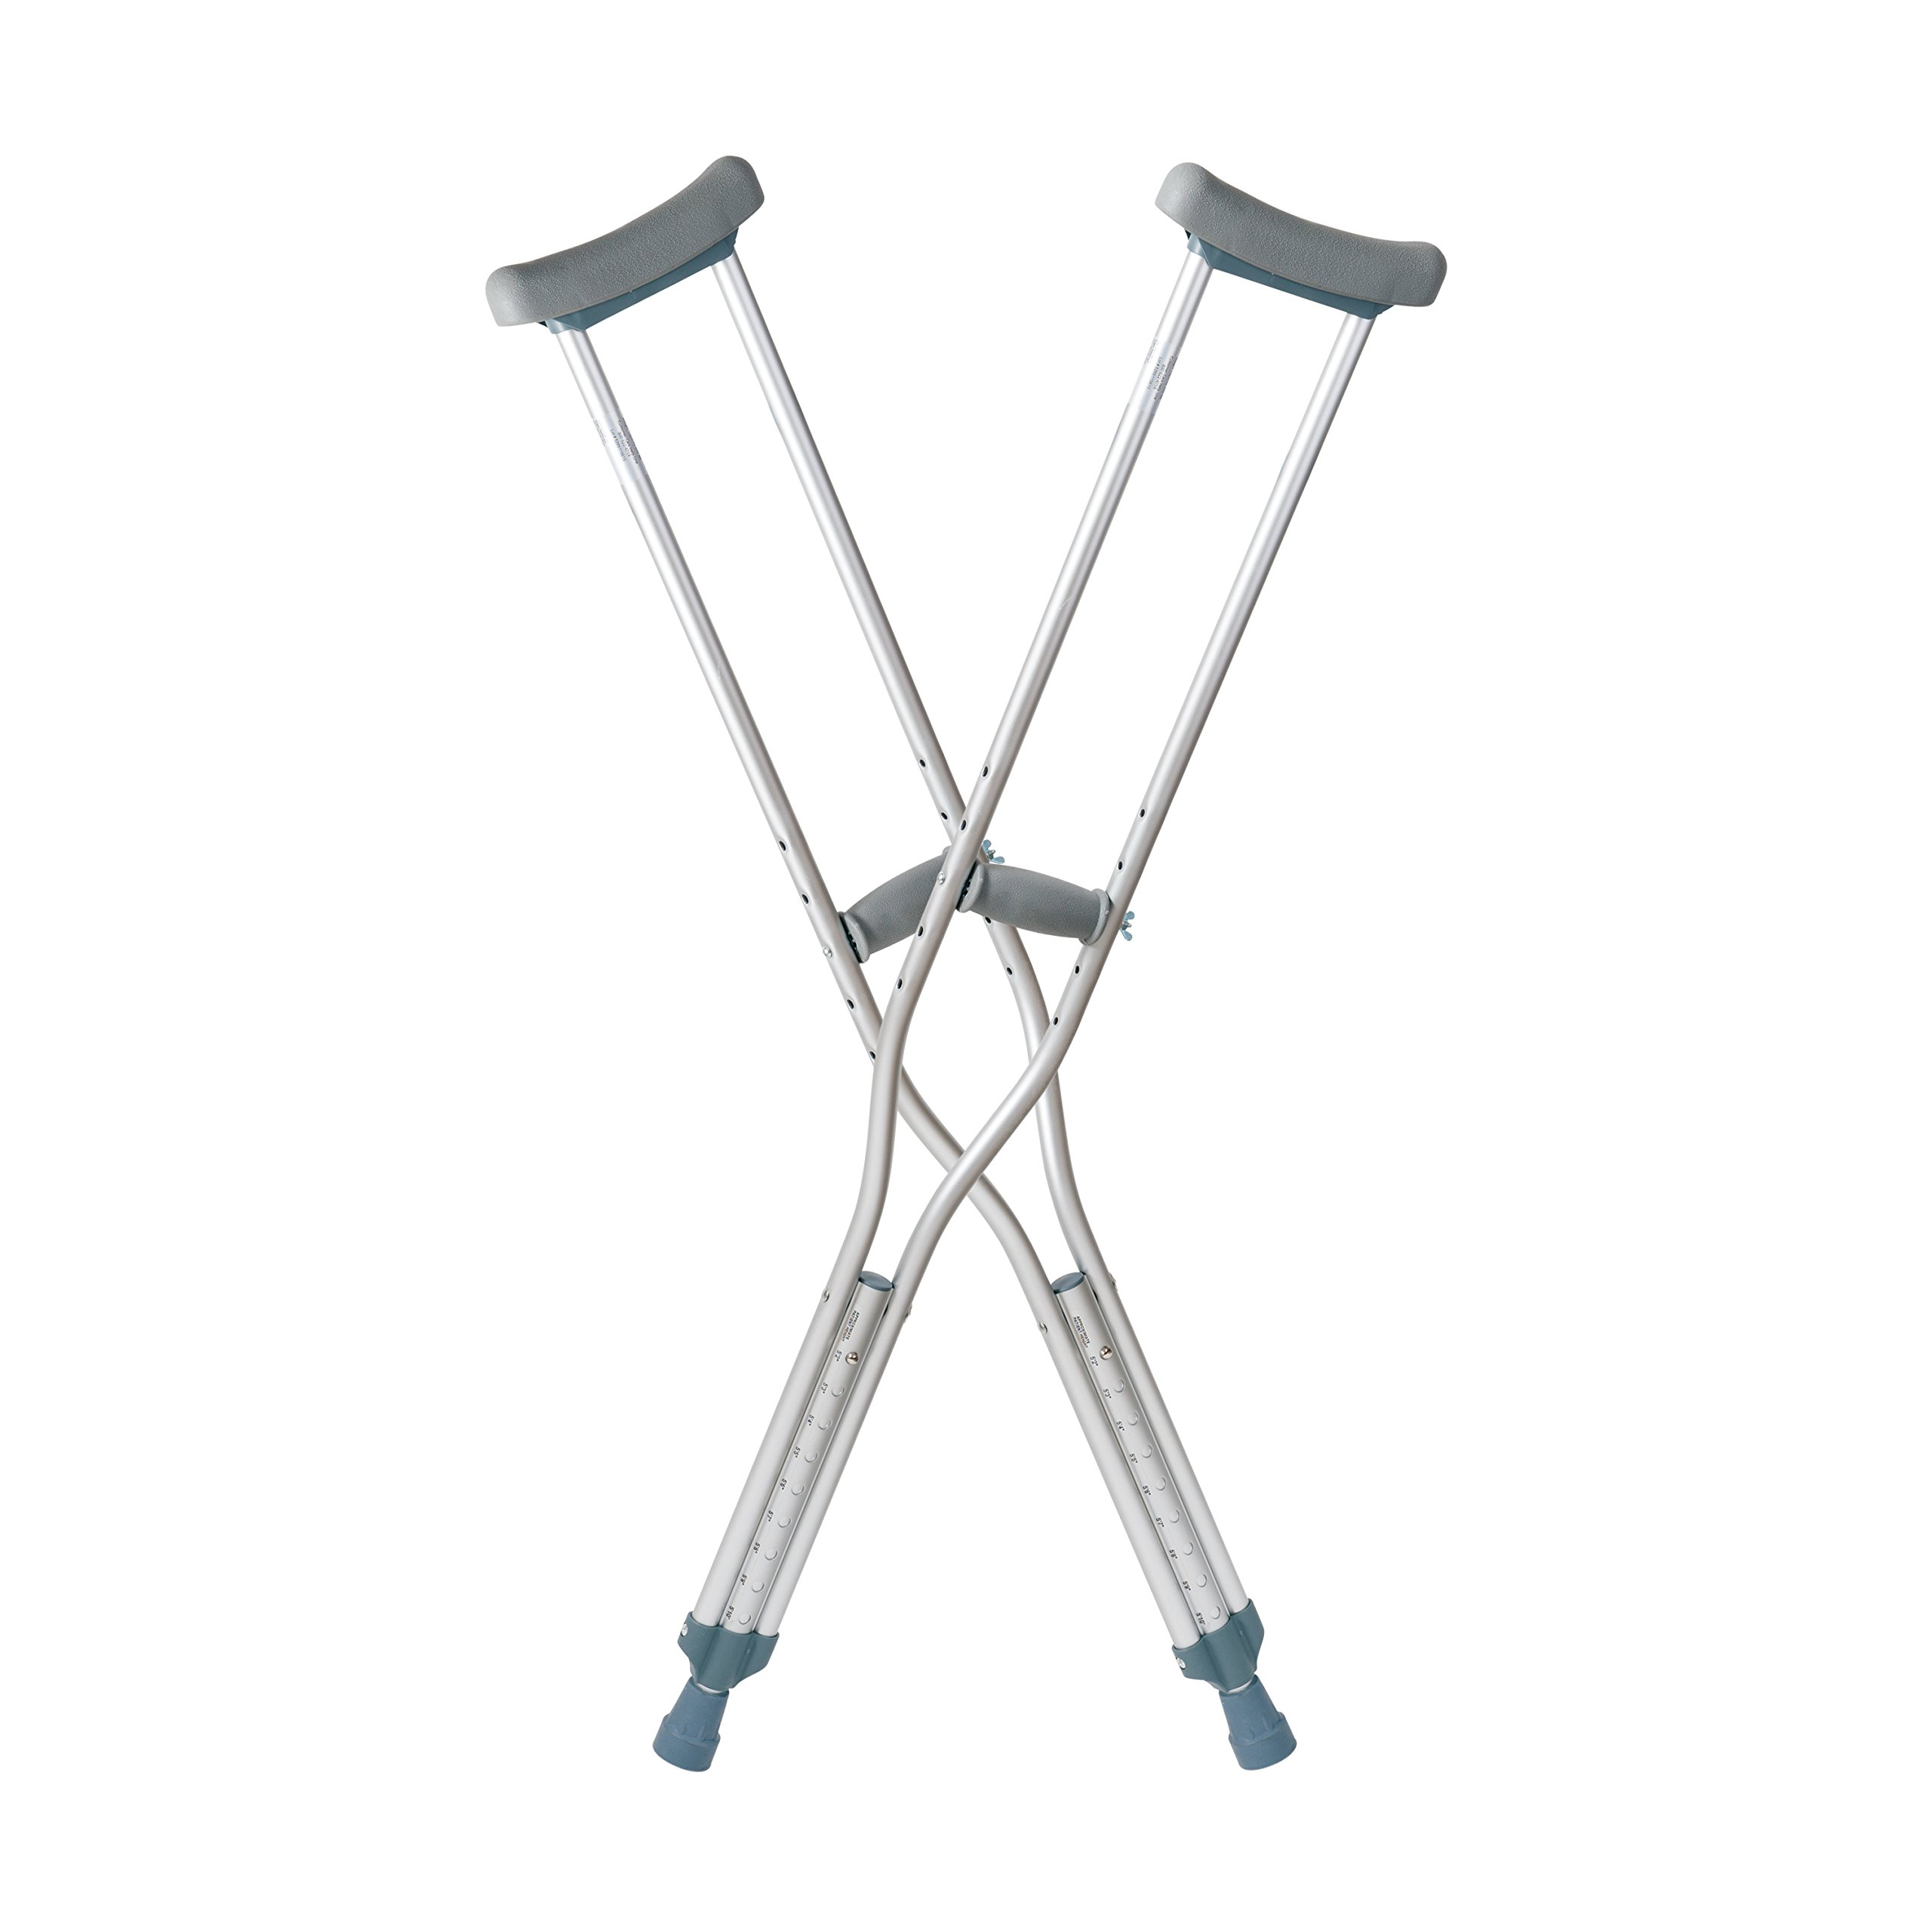 """DMI Lightweight Push-Button Adjustable Aluminum Crutches with Armpit Pads, Tips and Handgrips Accessories, Tall Adult 5'10"""" to 6'6"""", Silver and Gray"""